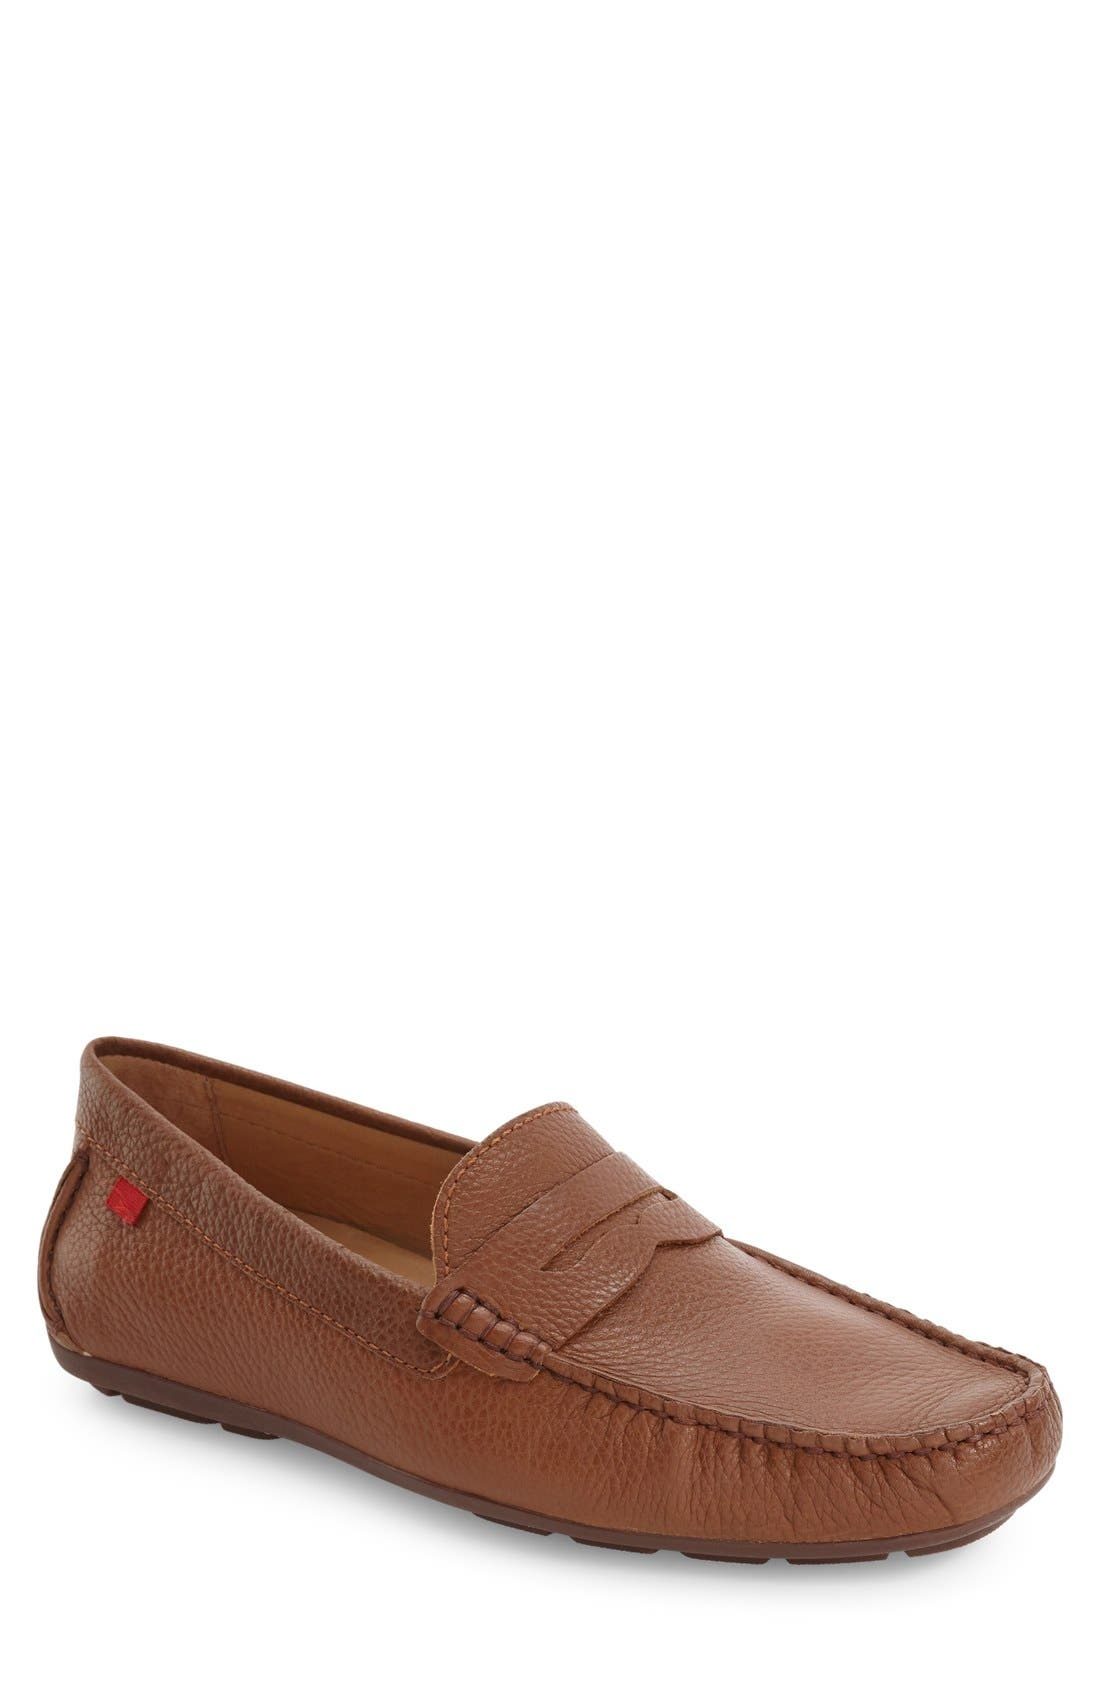 Alternate Image 1 Selected - Marc Joseph New York 'Union Street' Penny Loafer (Men)